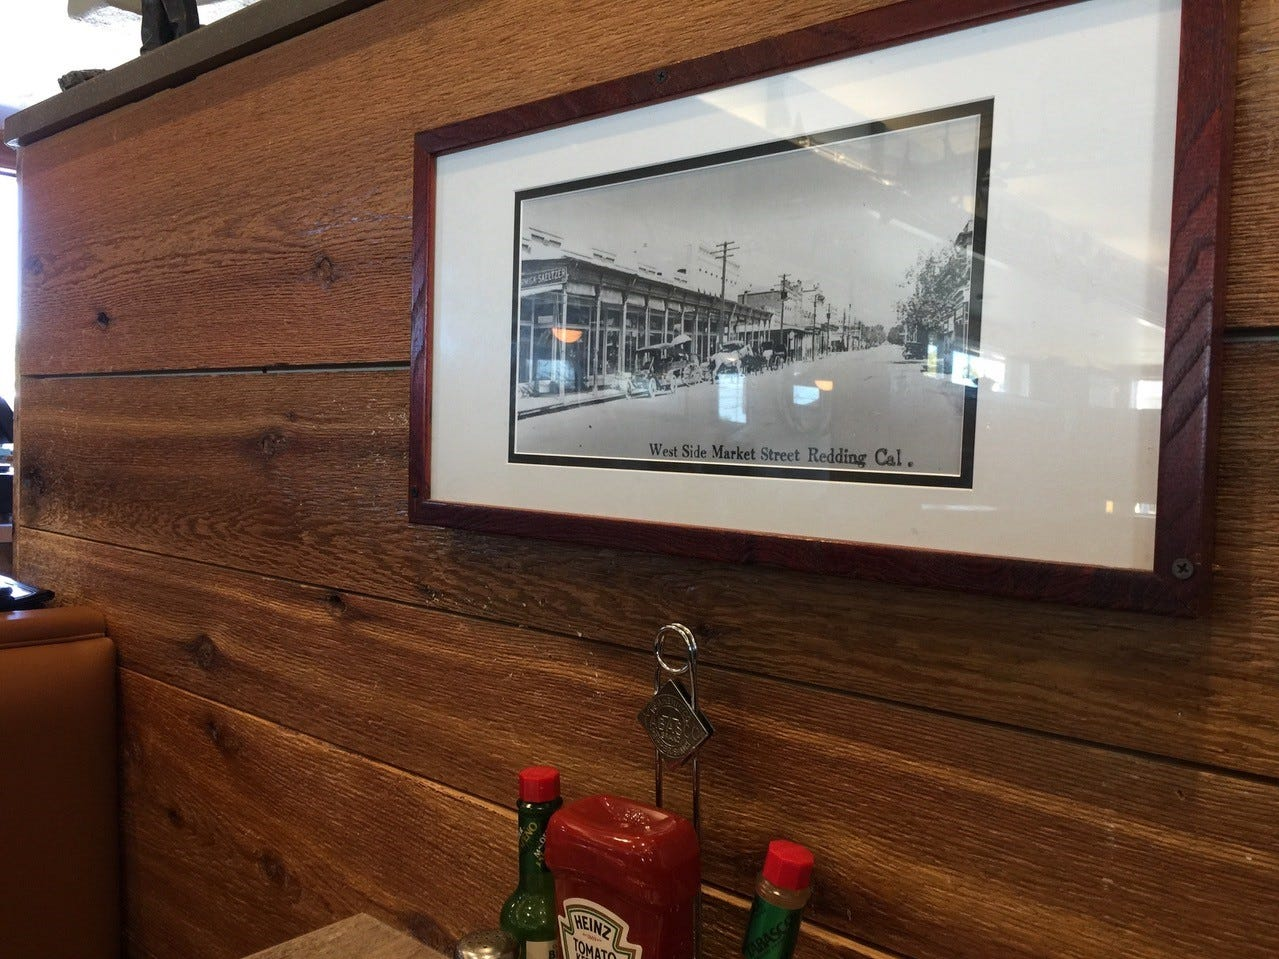 Decor at Jeff's California Cattle Company includes framed black and white photos of old Redding.